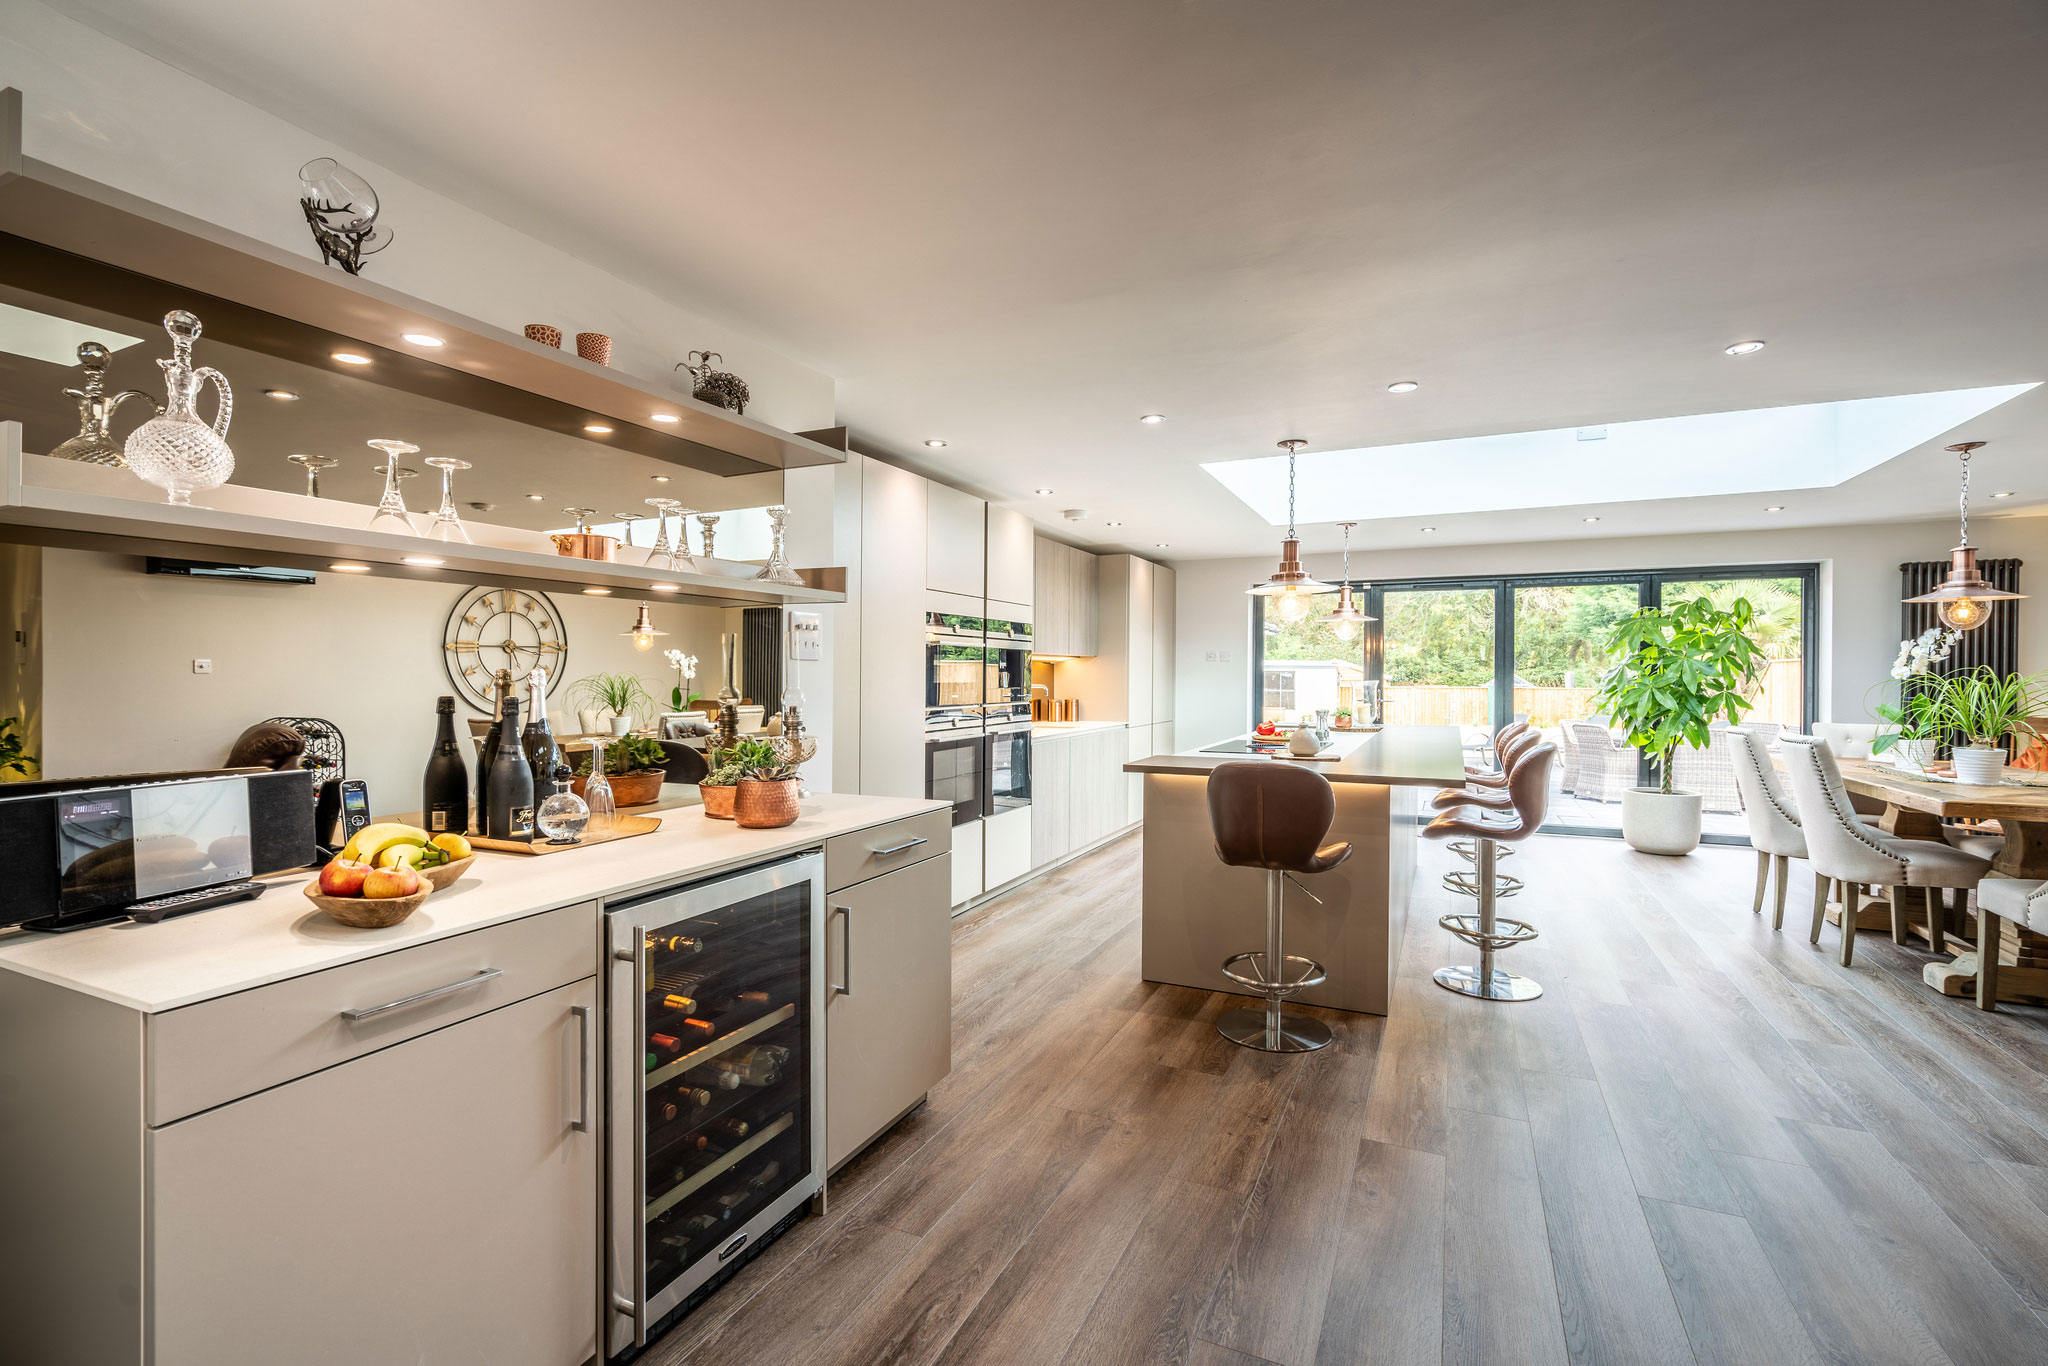 Image of Myers Touch Daniels Kitchen 01043 HDR ZF 2442 14358 1 035 in Een ruimte ontworpen om te socializen - Cosentino